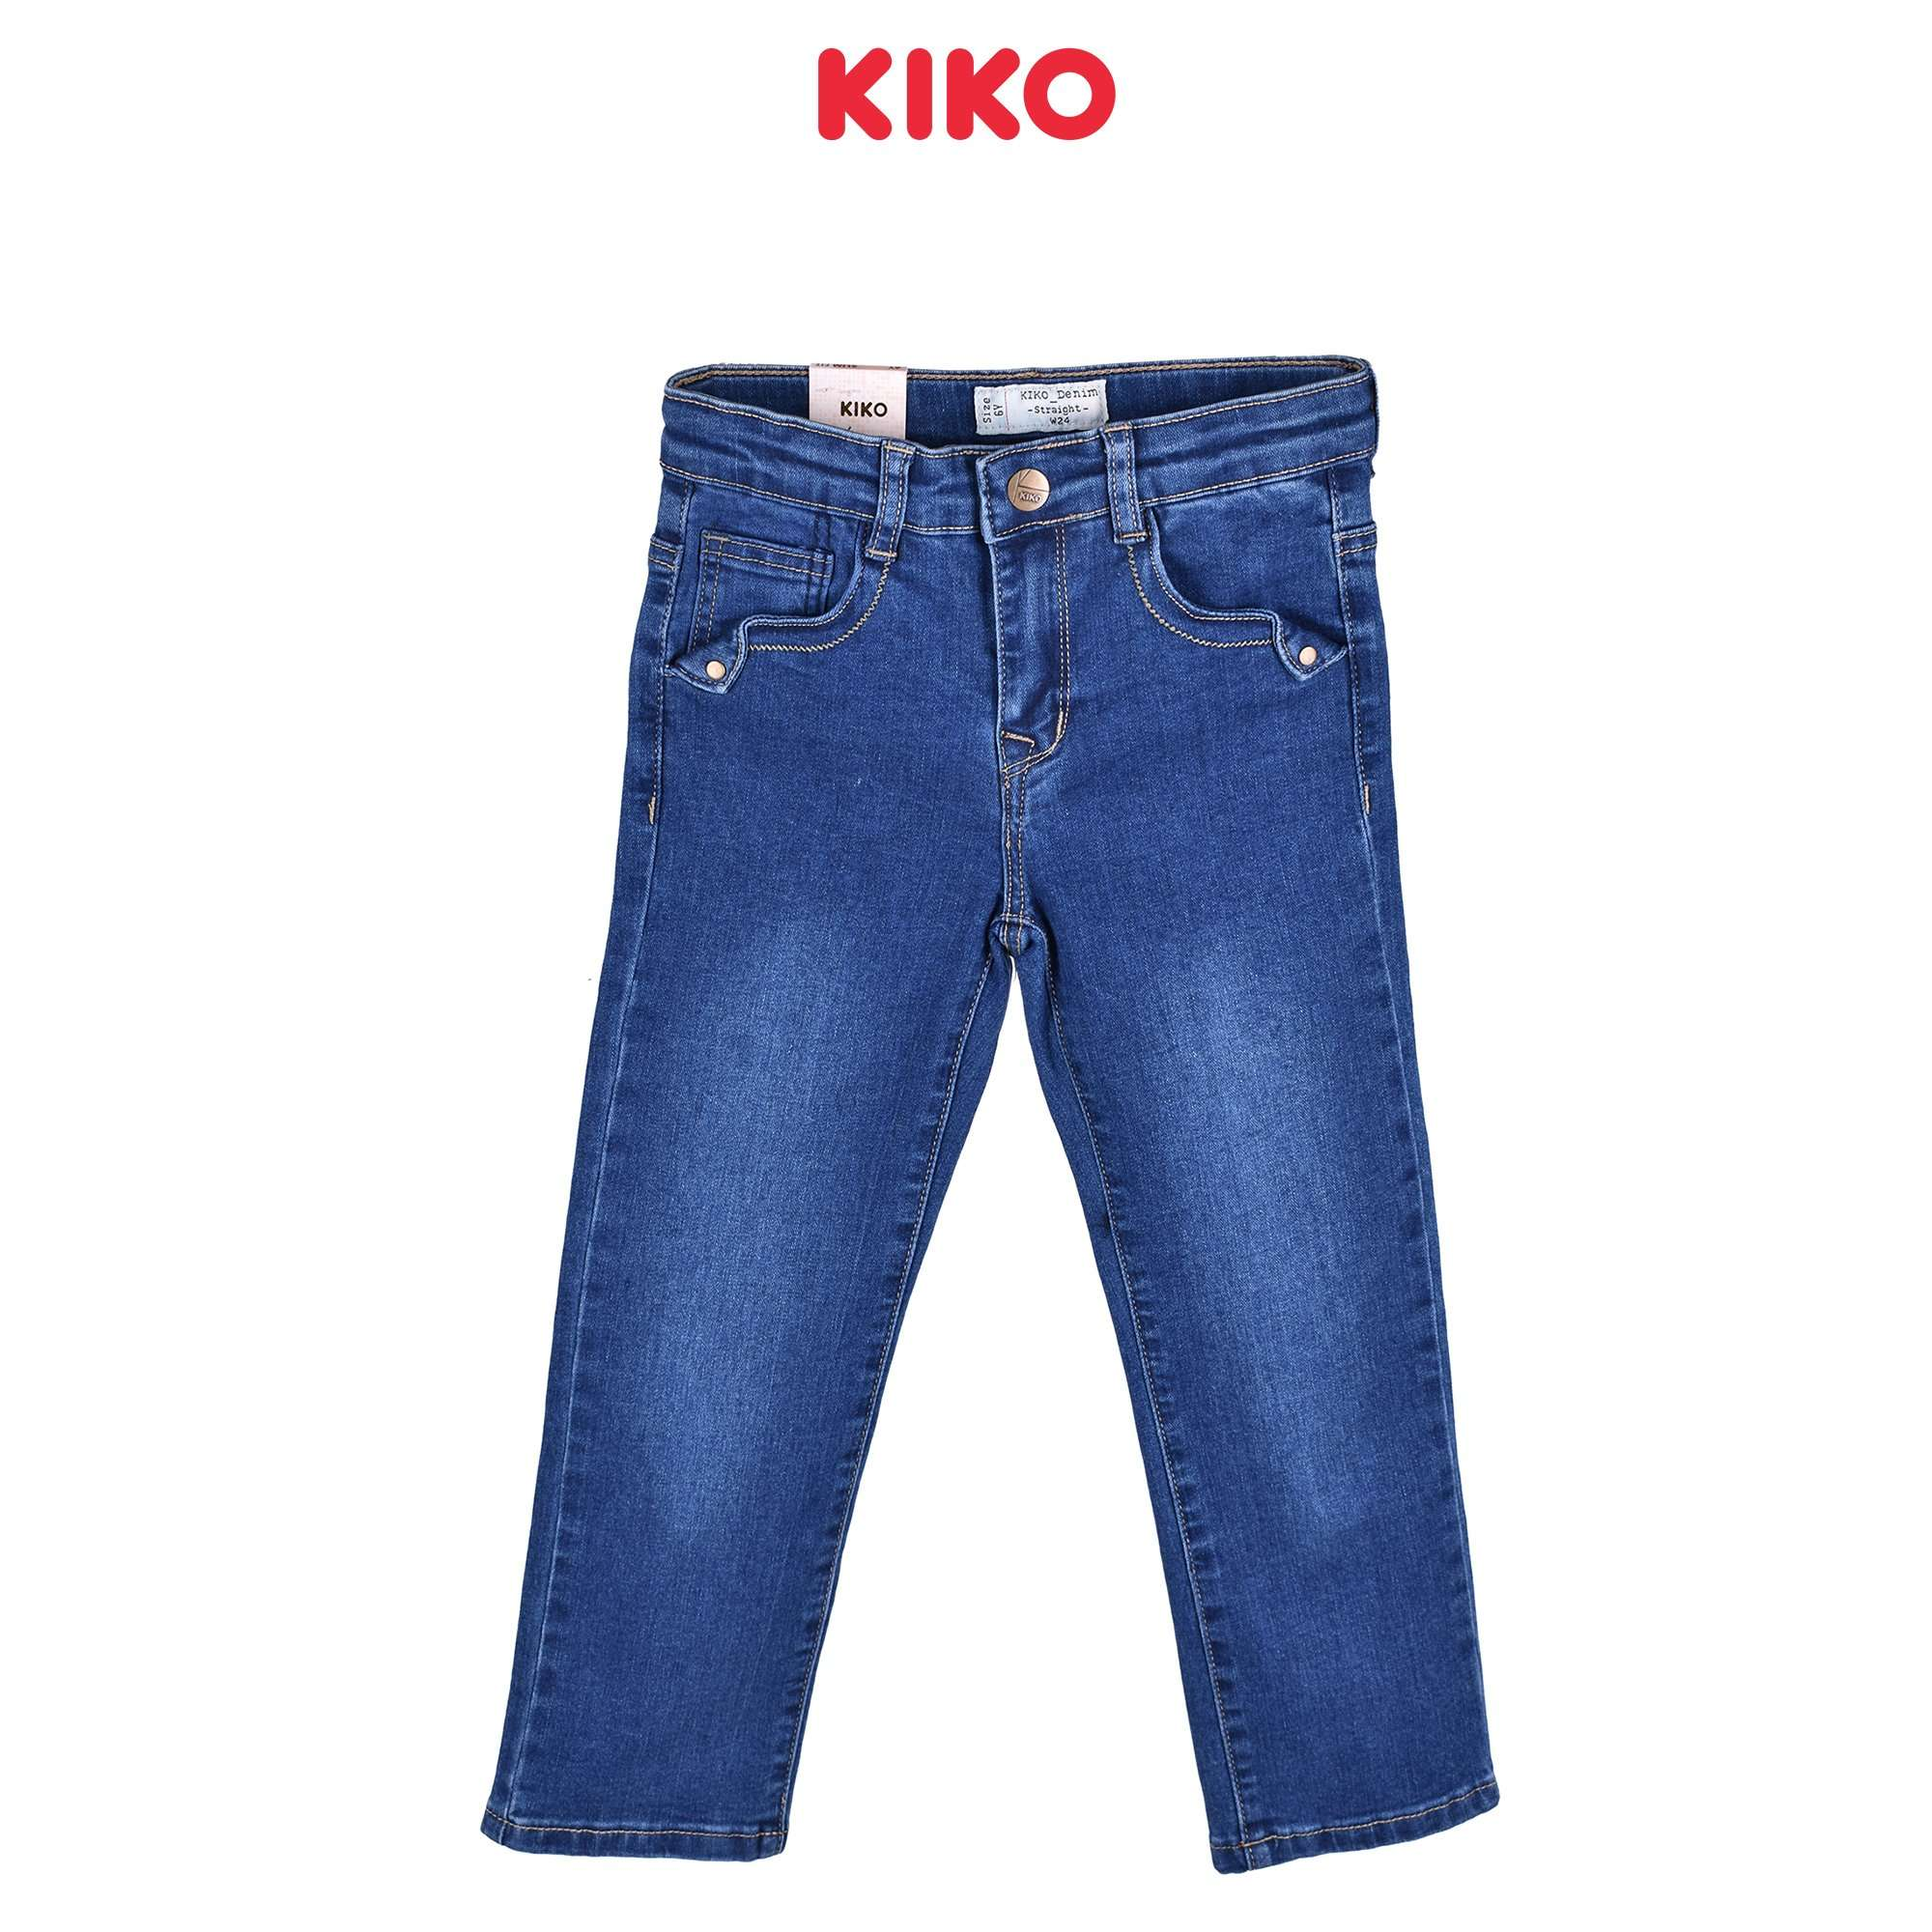 KIKO Girl Jeans Slim Fit - Blue 135061-211 : Buy KIKO online at CMG.MY